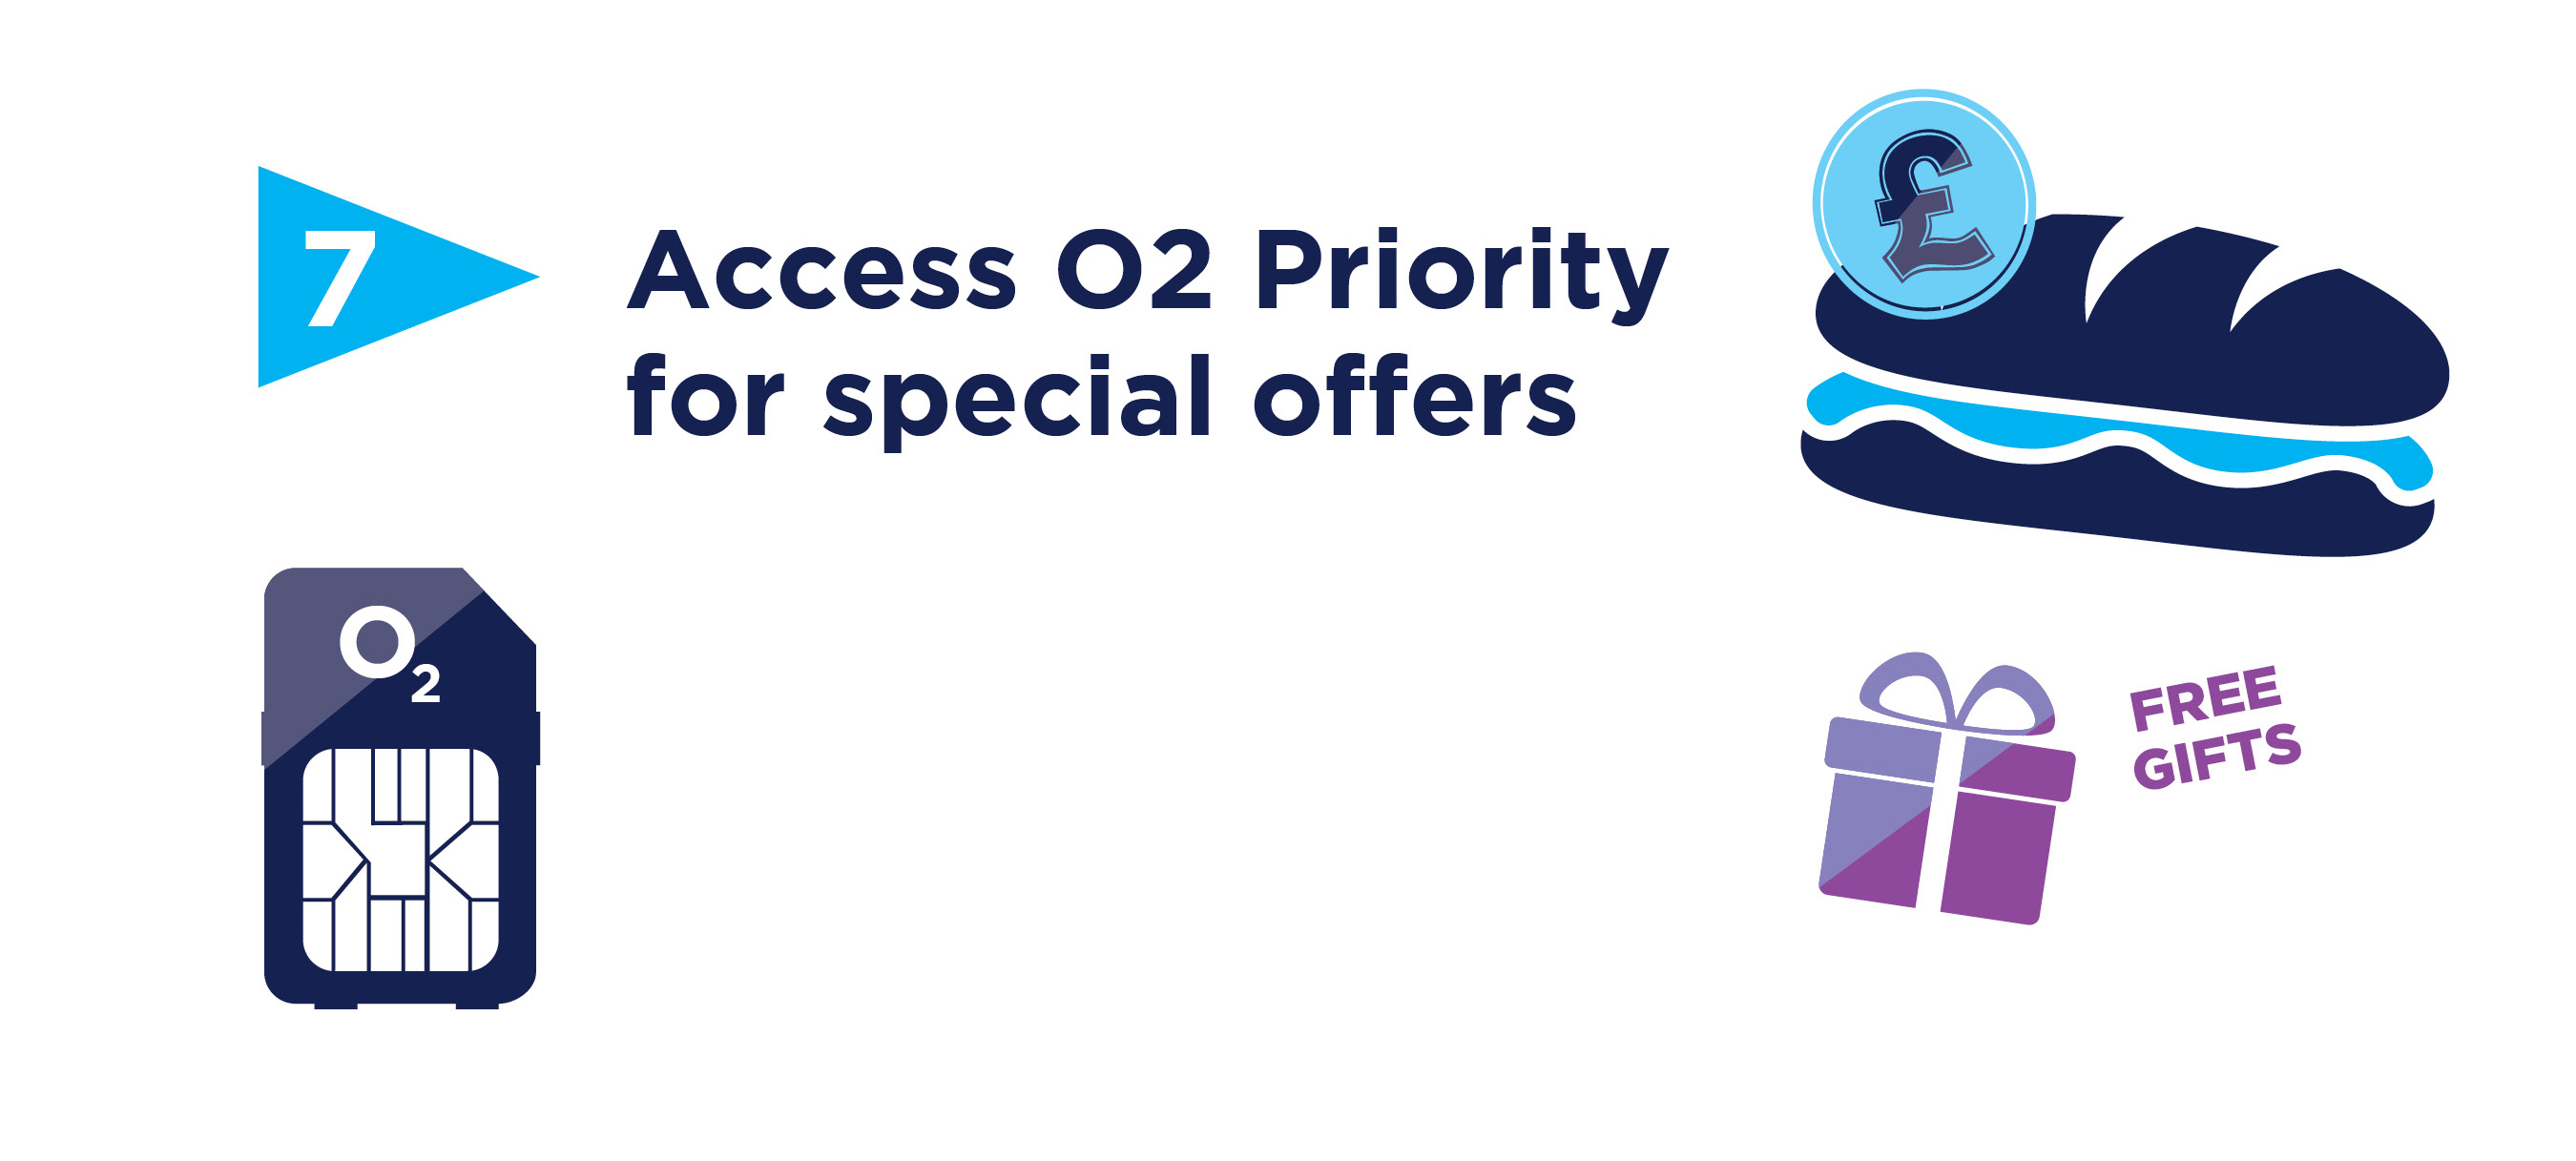 Access O2 priority for special deals